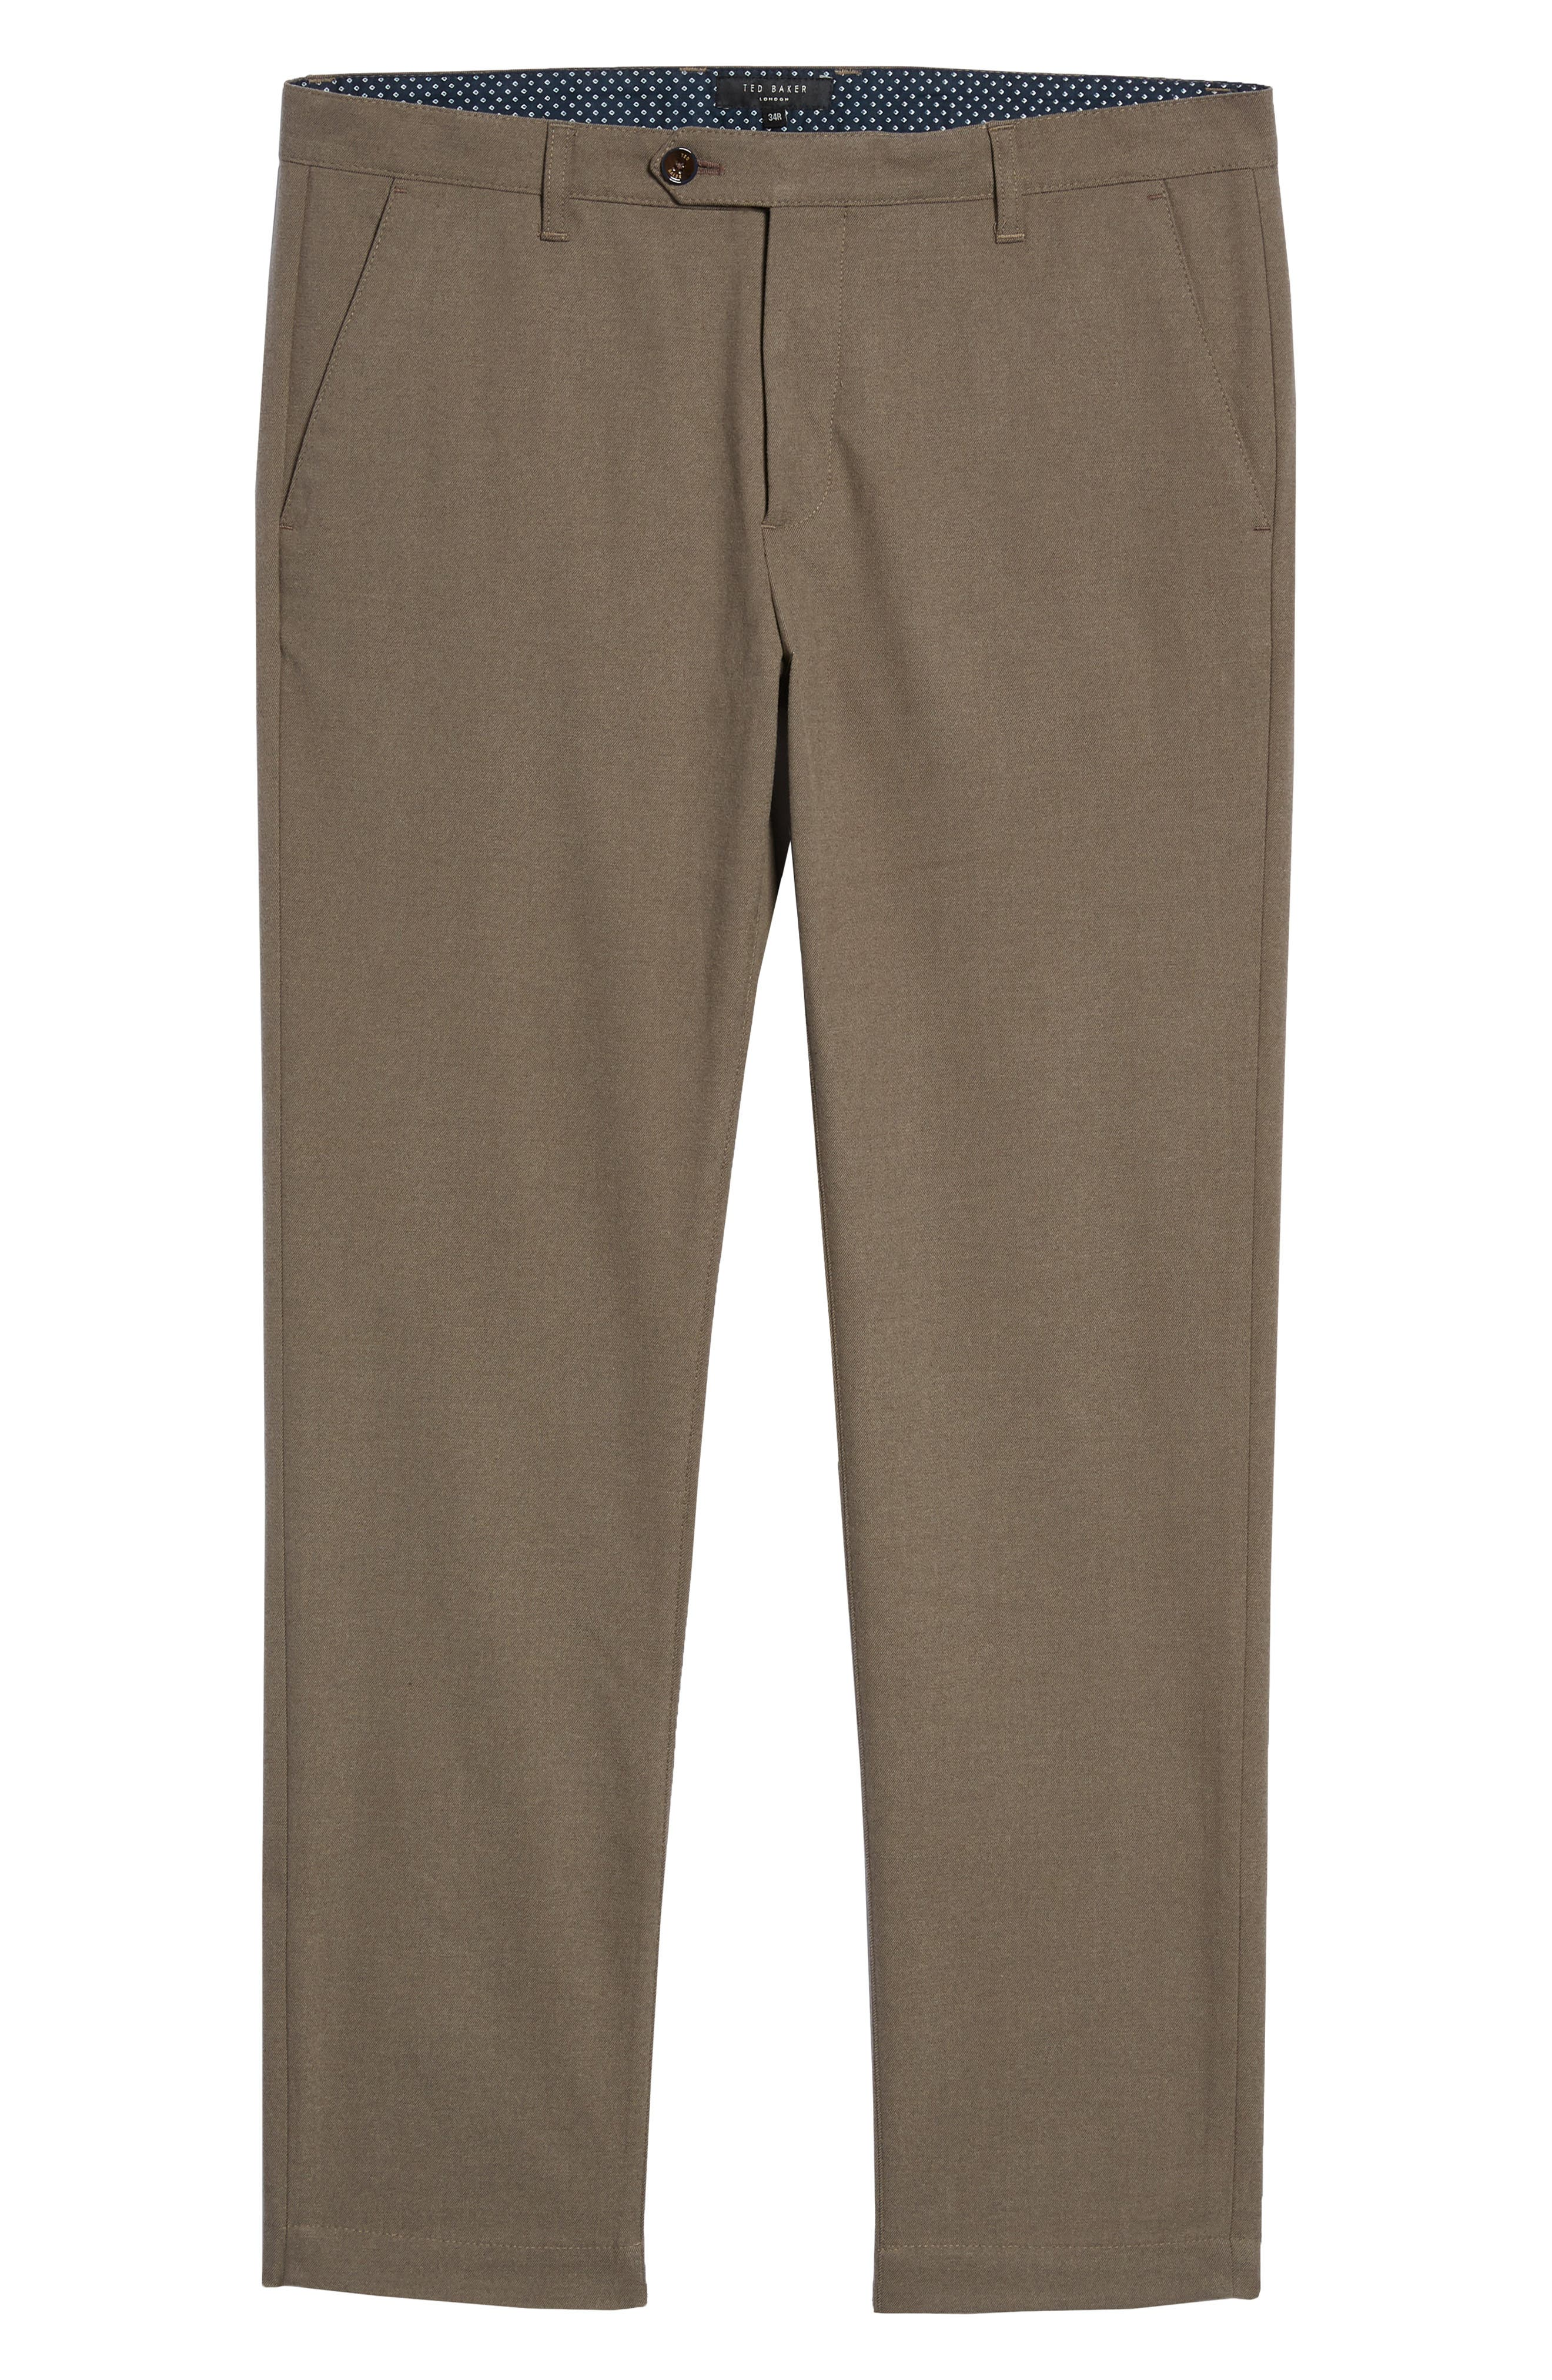 Tall Slim Fit Brushed Trousers,                             Alternate thumbnail 6, color,                             NATURAL